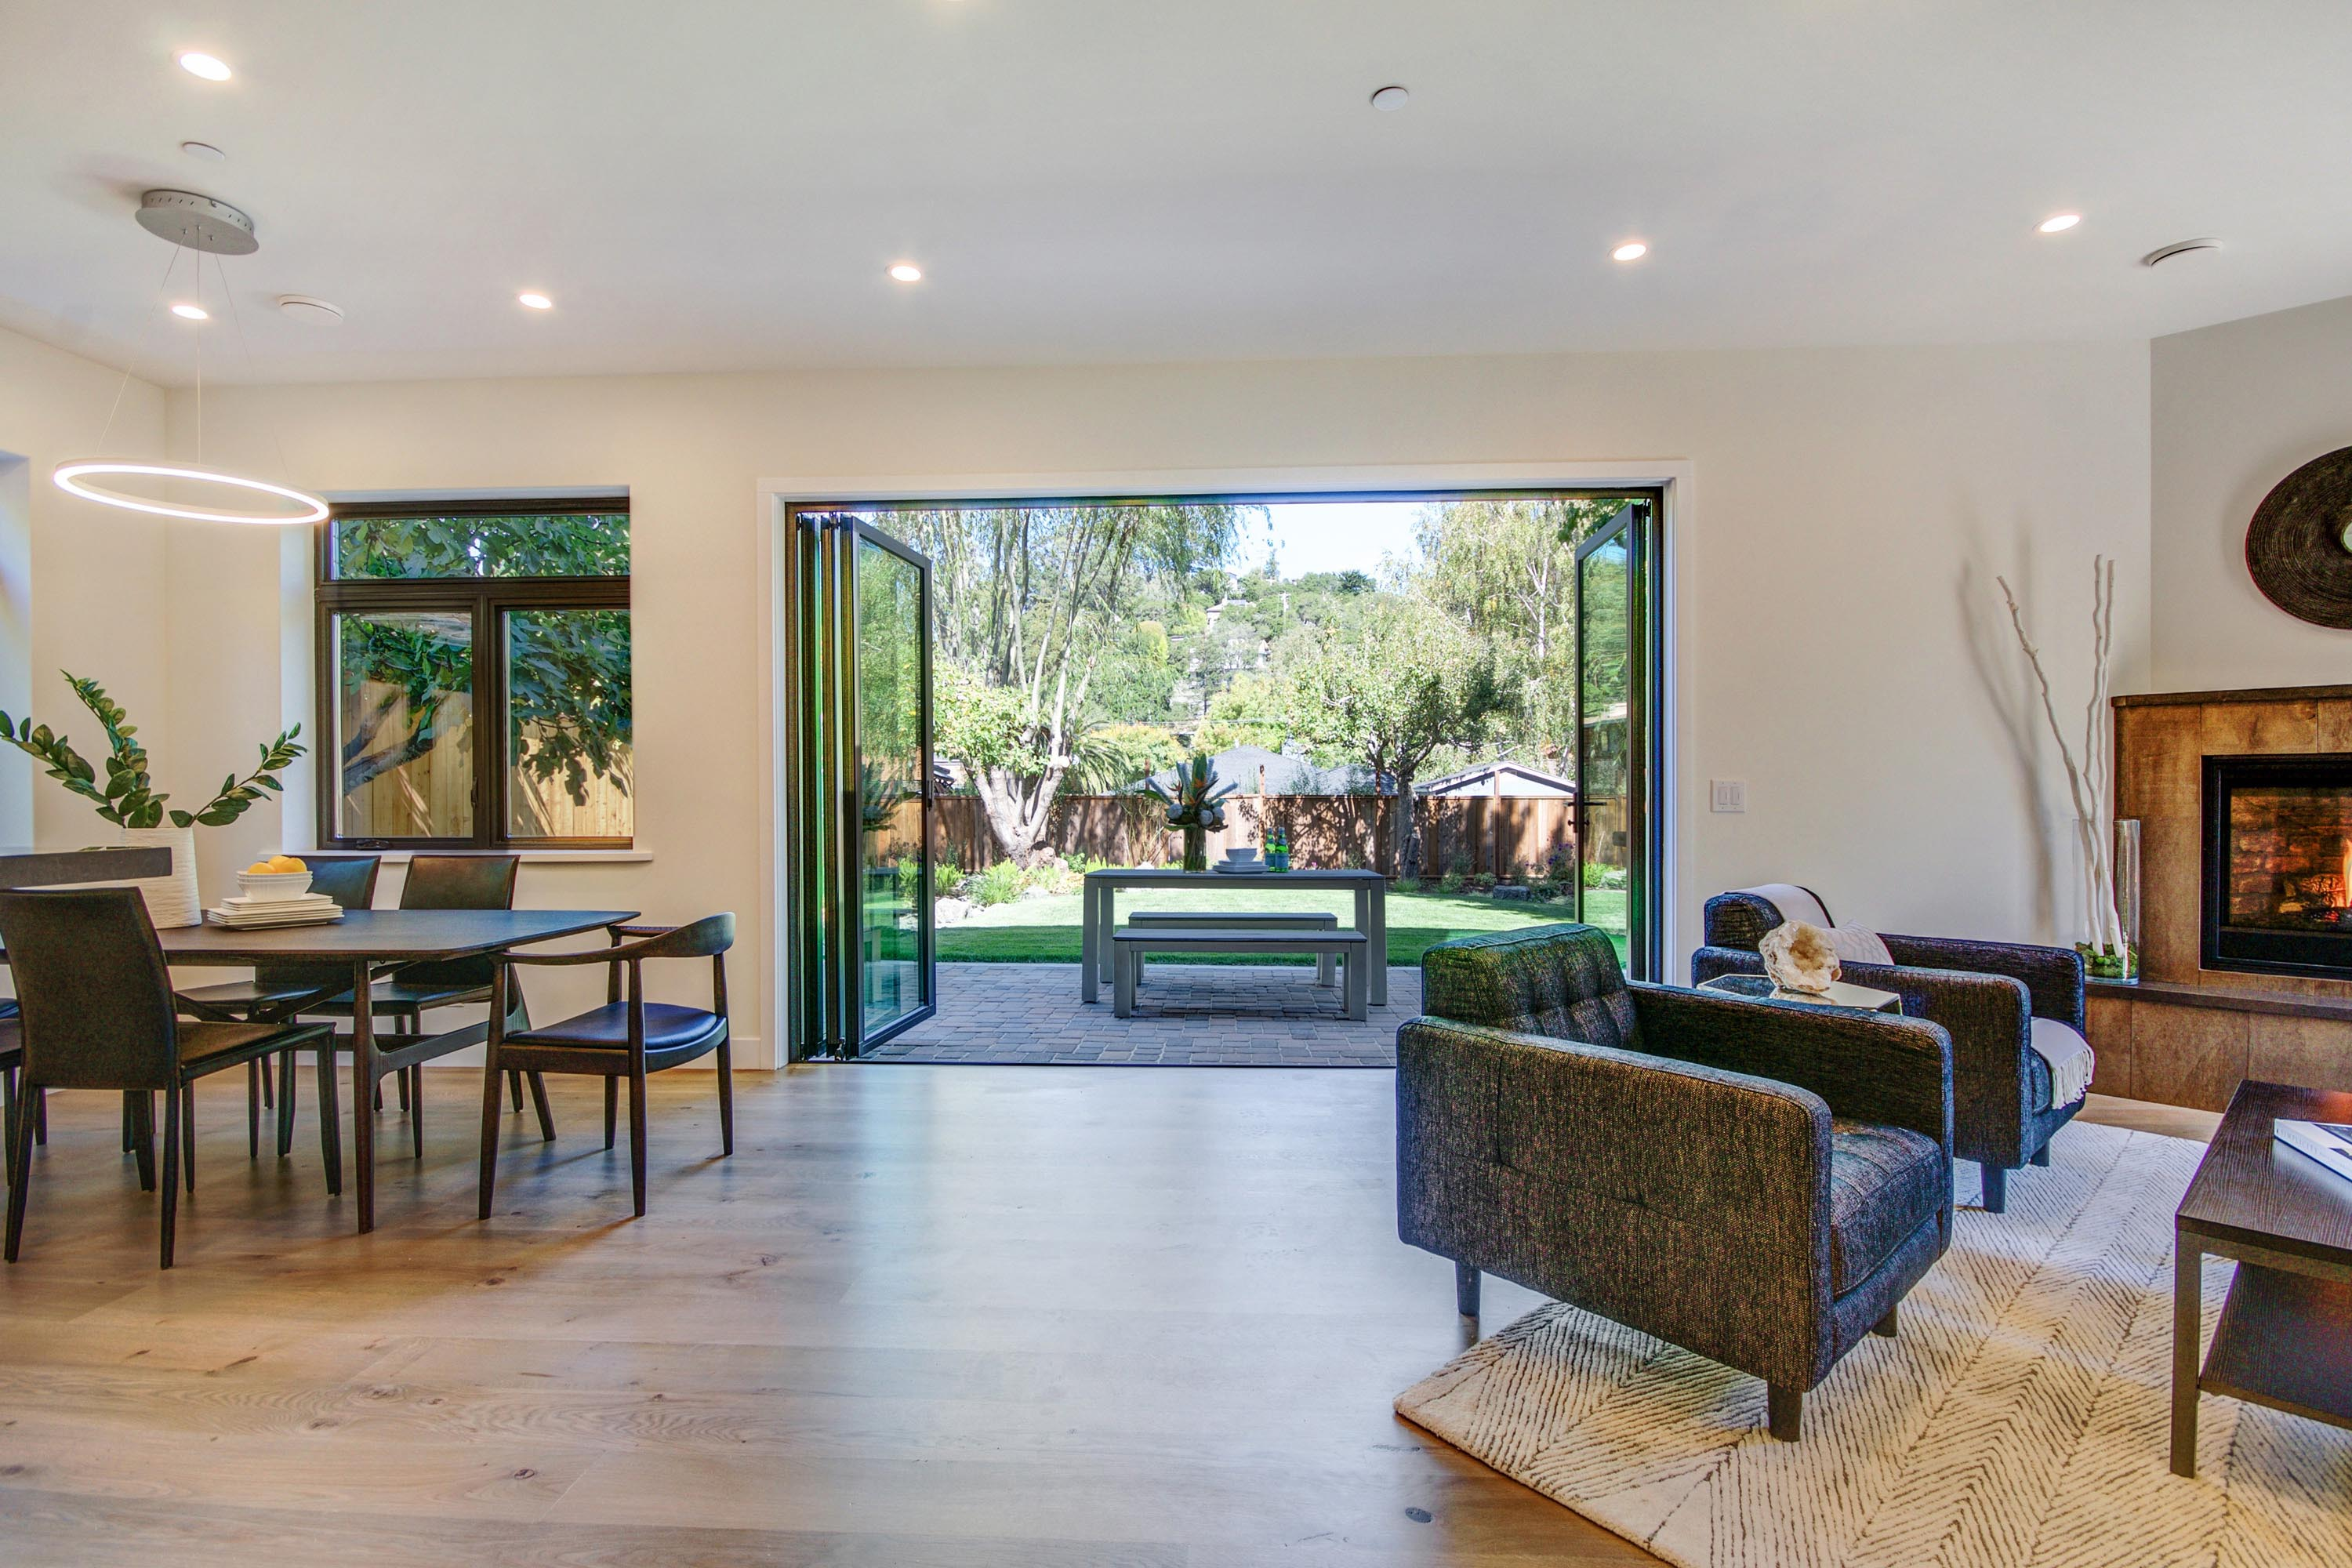 sustainable remodel with energy efficient folding glass wall and open concept design